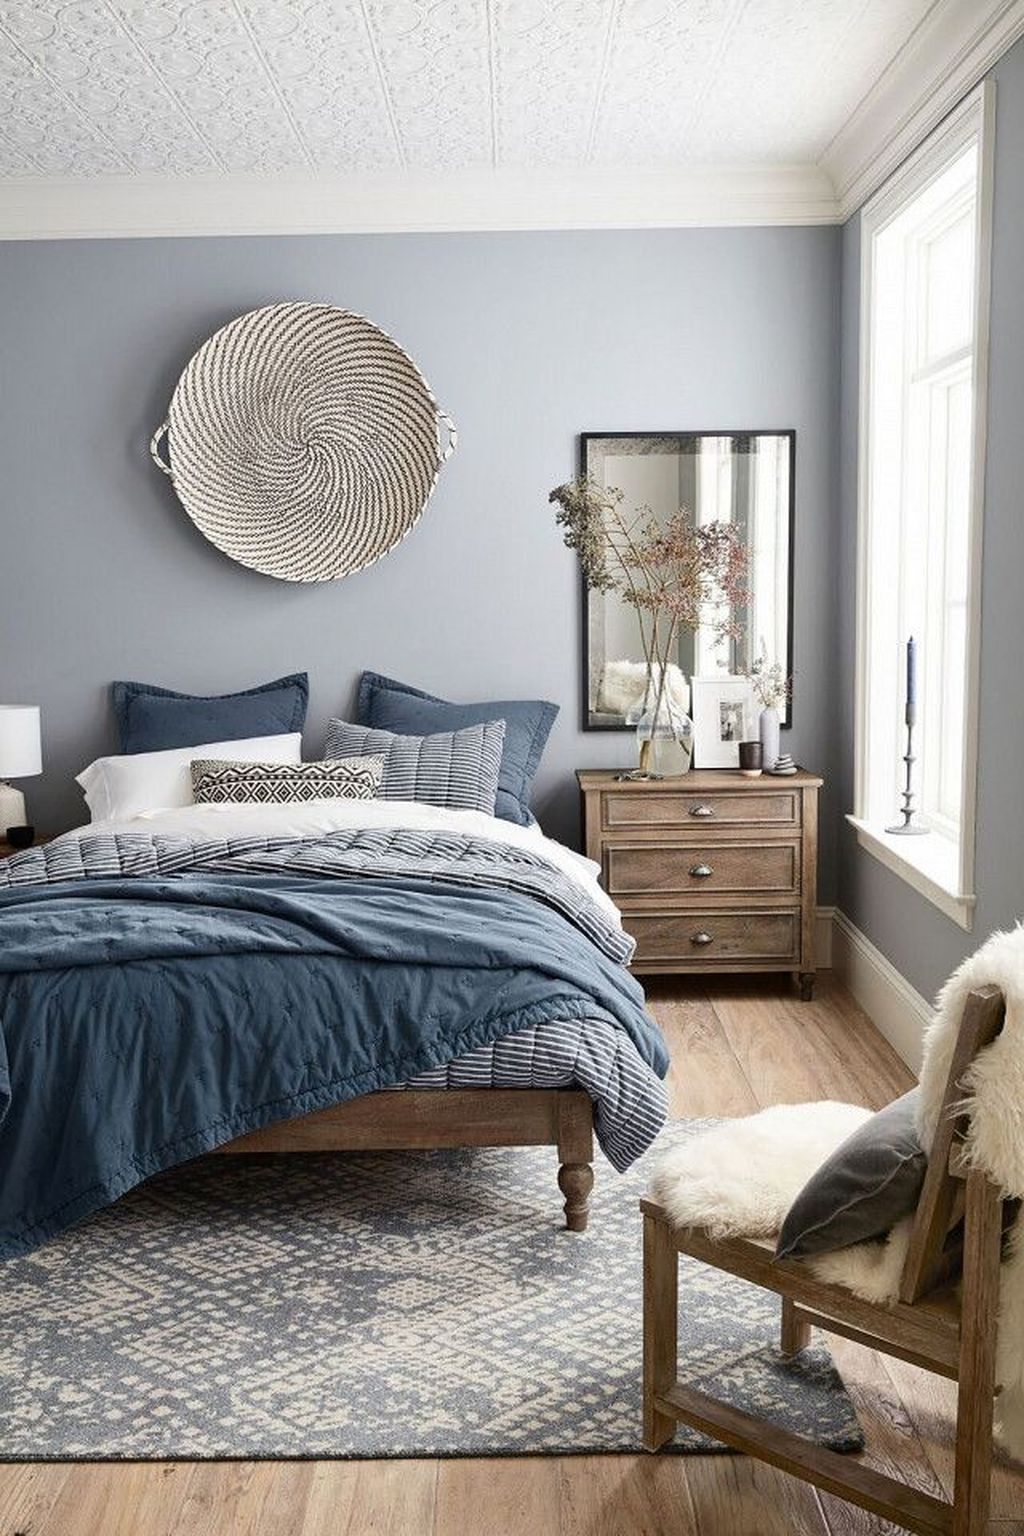 51 Beautiful Blue And Gray Bedroom Design Ideas | Pinterest